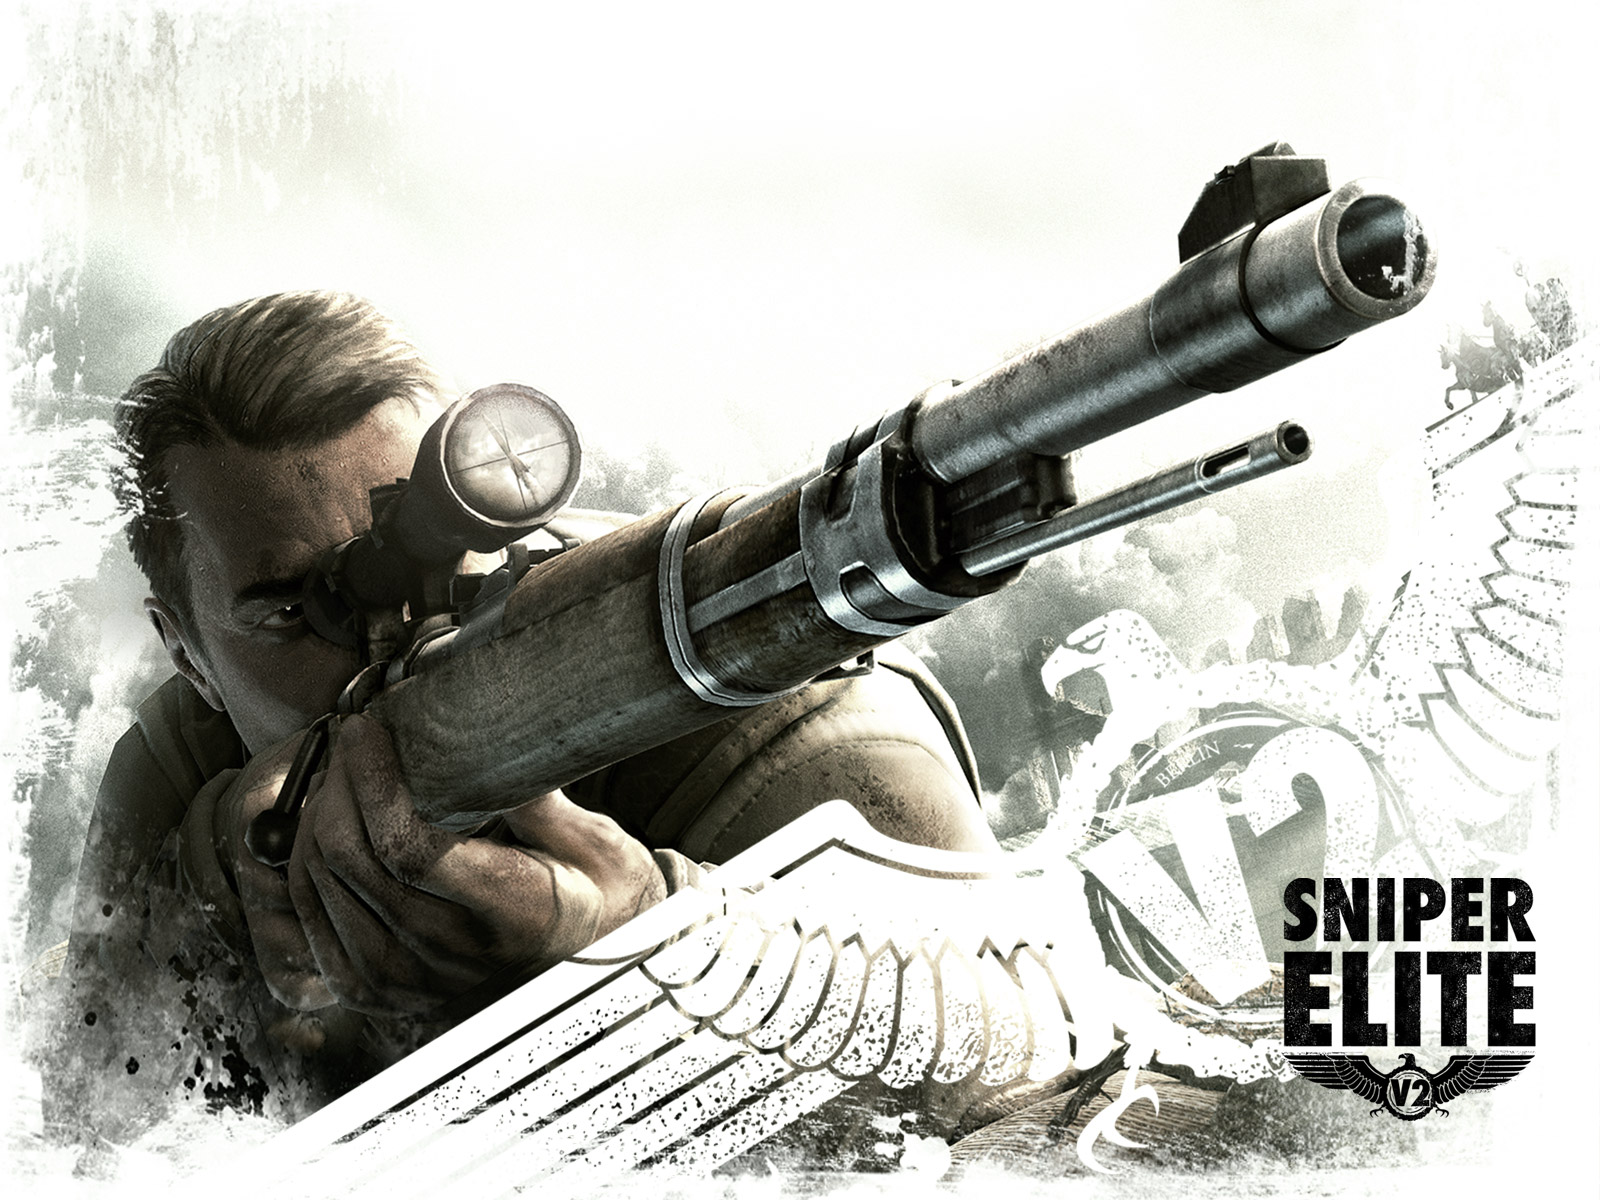 Sniper Elite  Sniper Elite V2 Wallpaper Gallery   Best Game 1600x1200